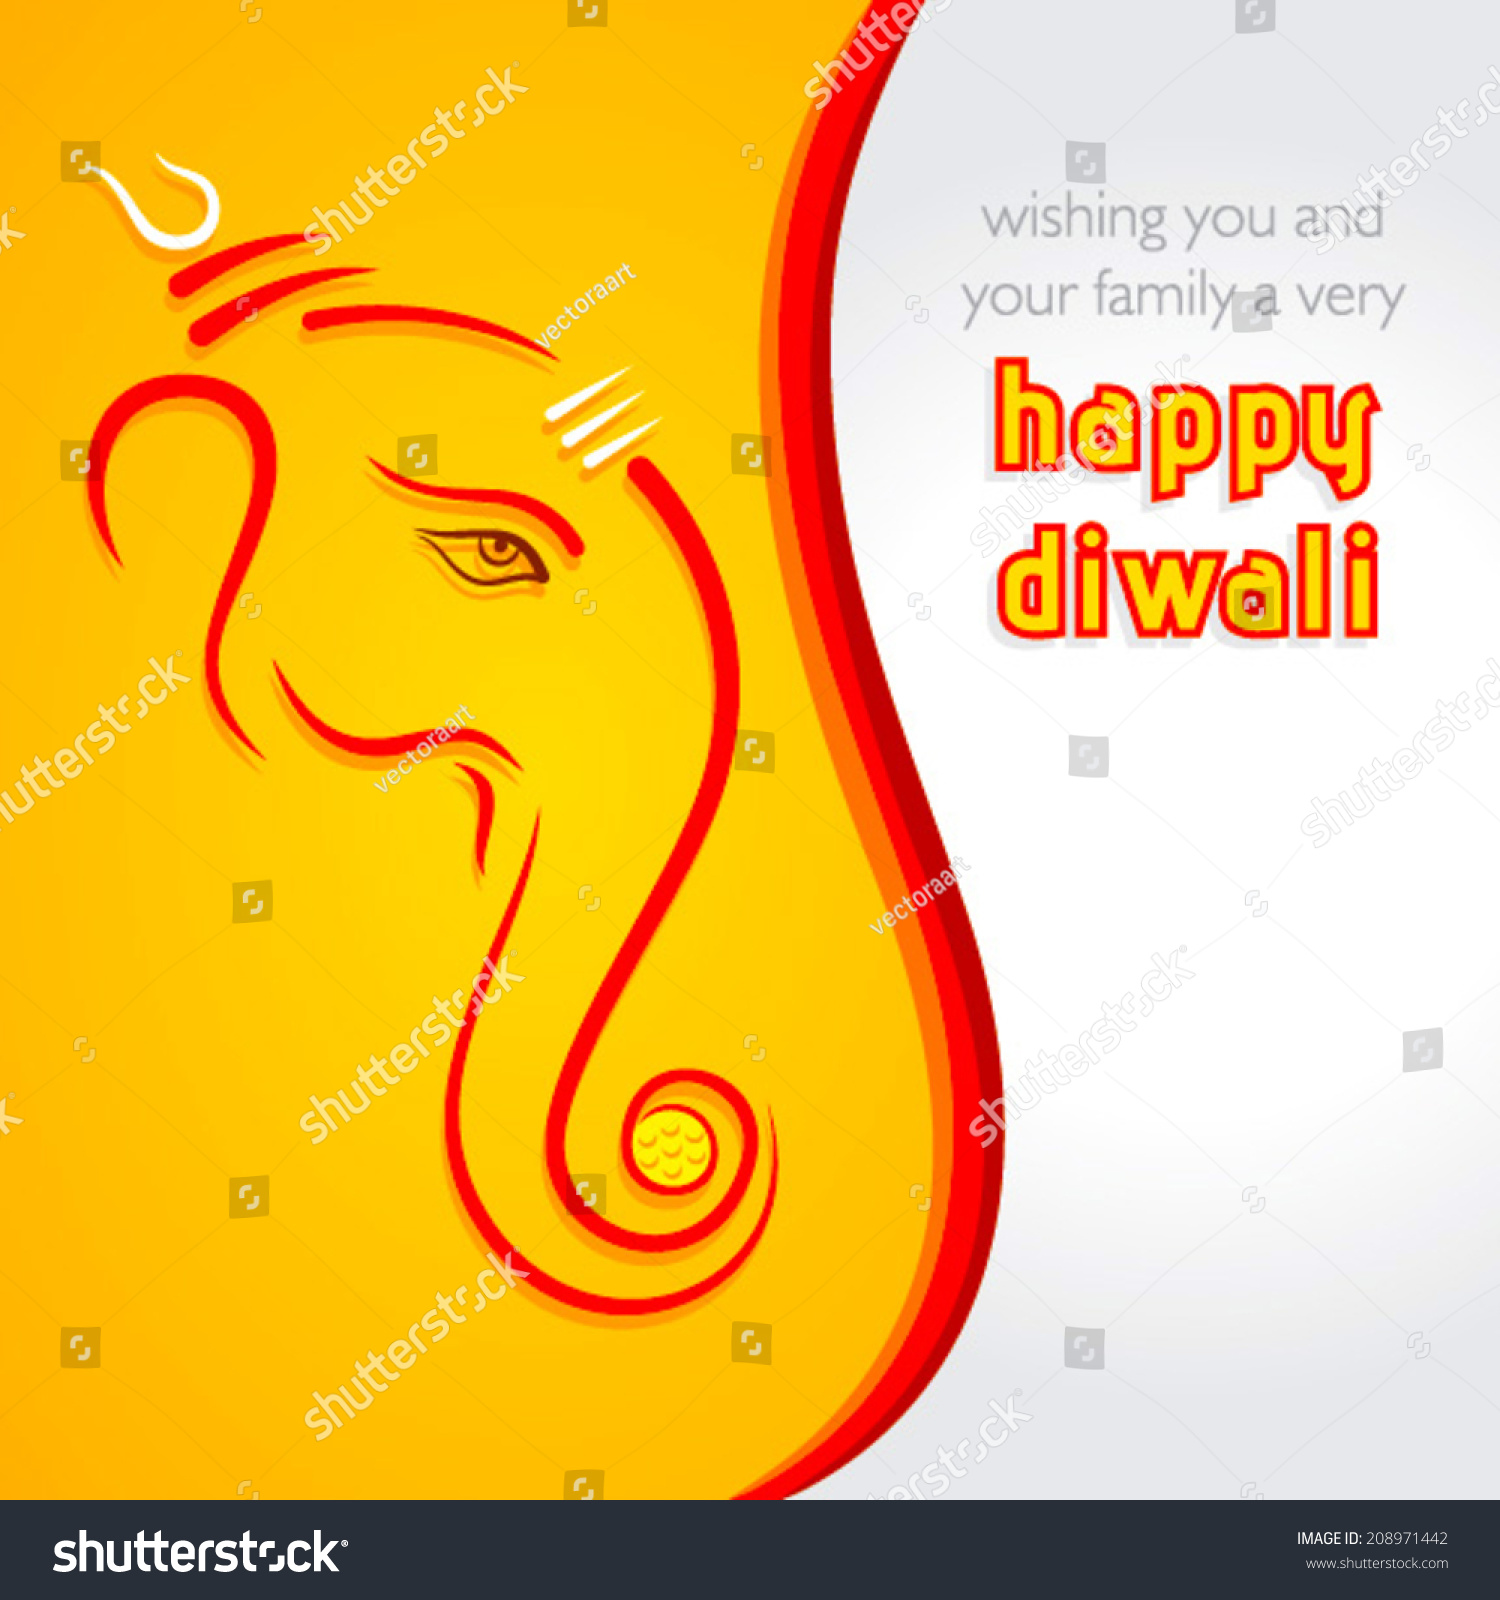 Creative happy diwali greeting card background stock vector royalty creative happy diwali greeting card background vector m4hsunfo